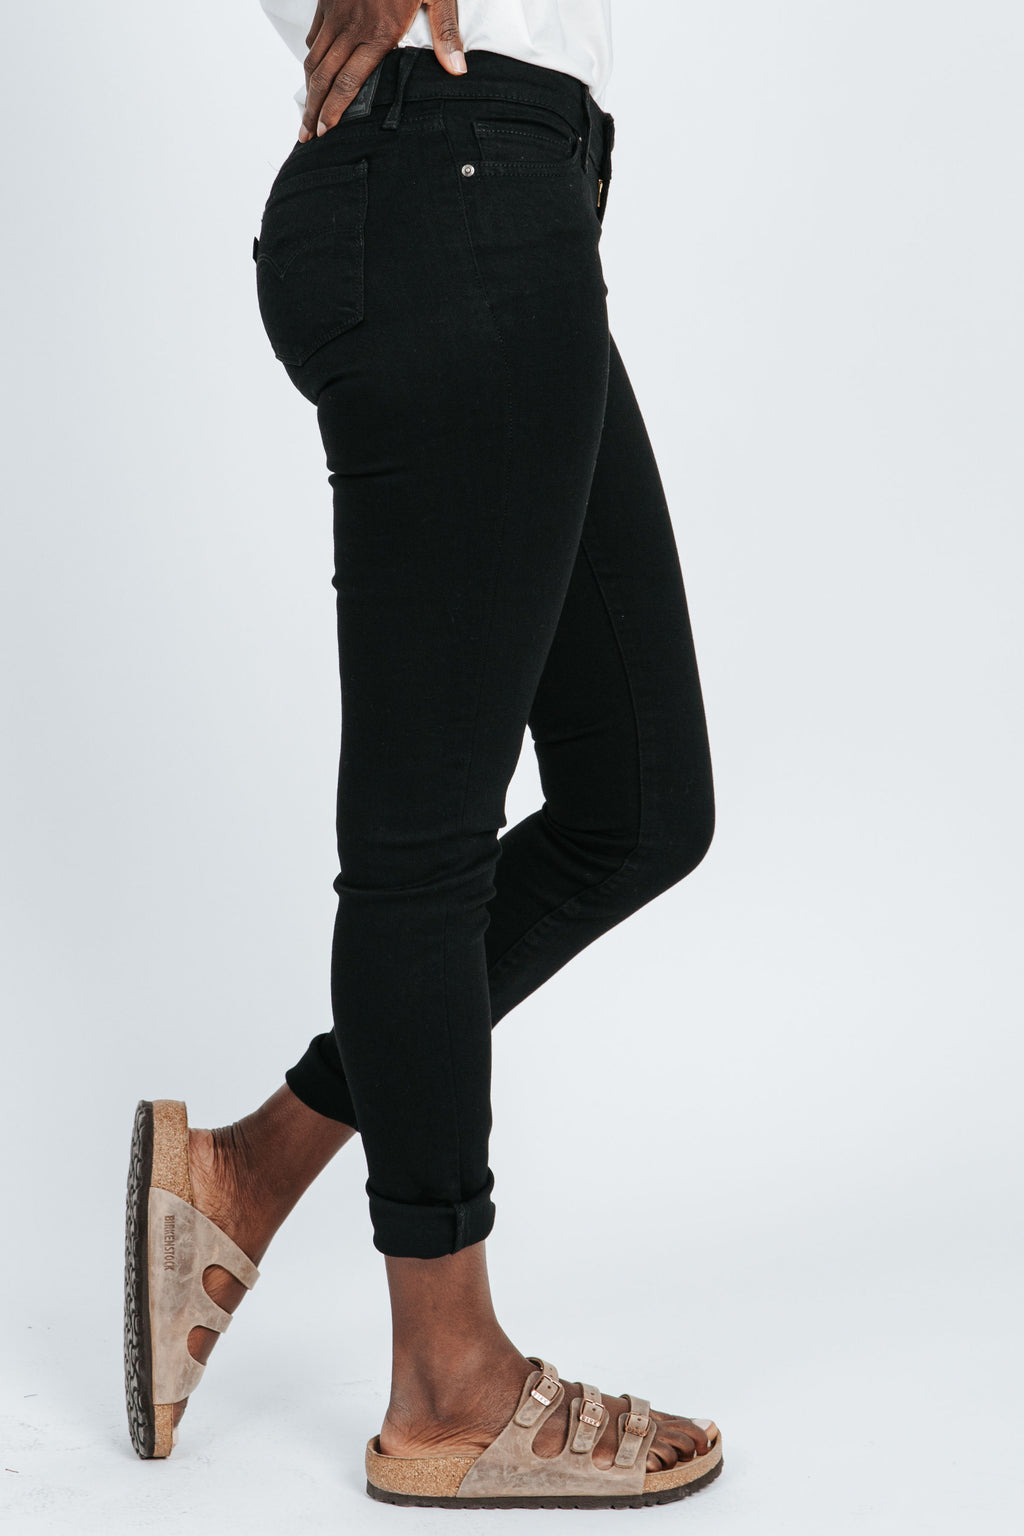 Levi's: 711 Skinny Jeans in Soft Black, studio shoot; side view